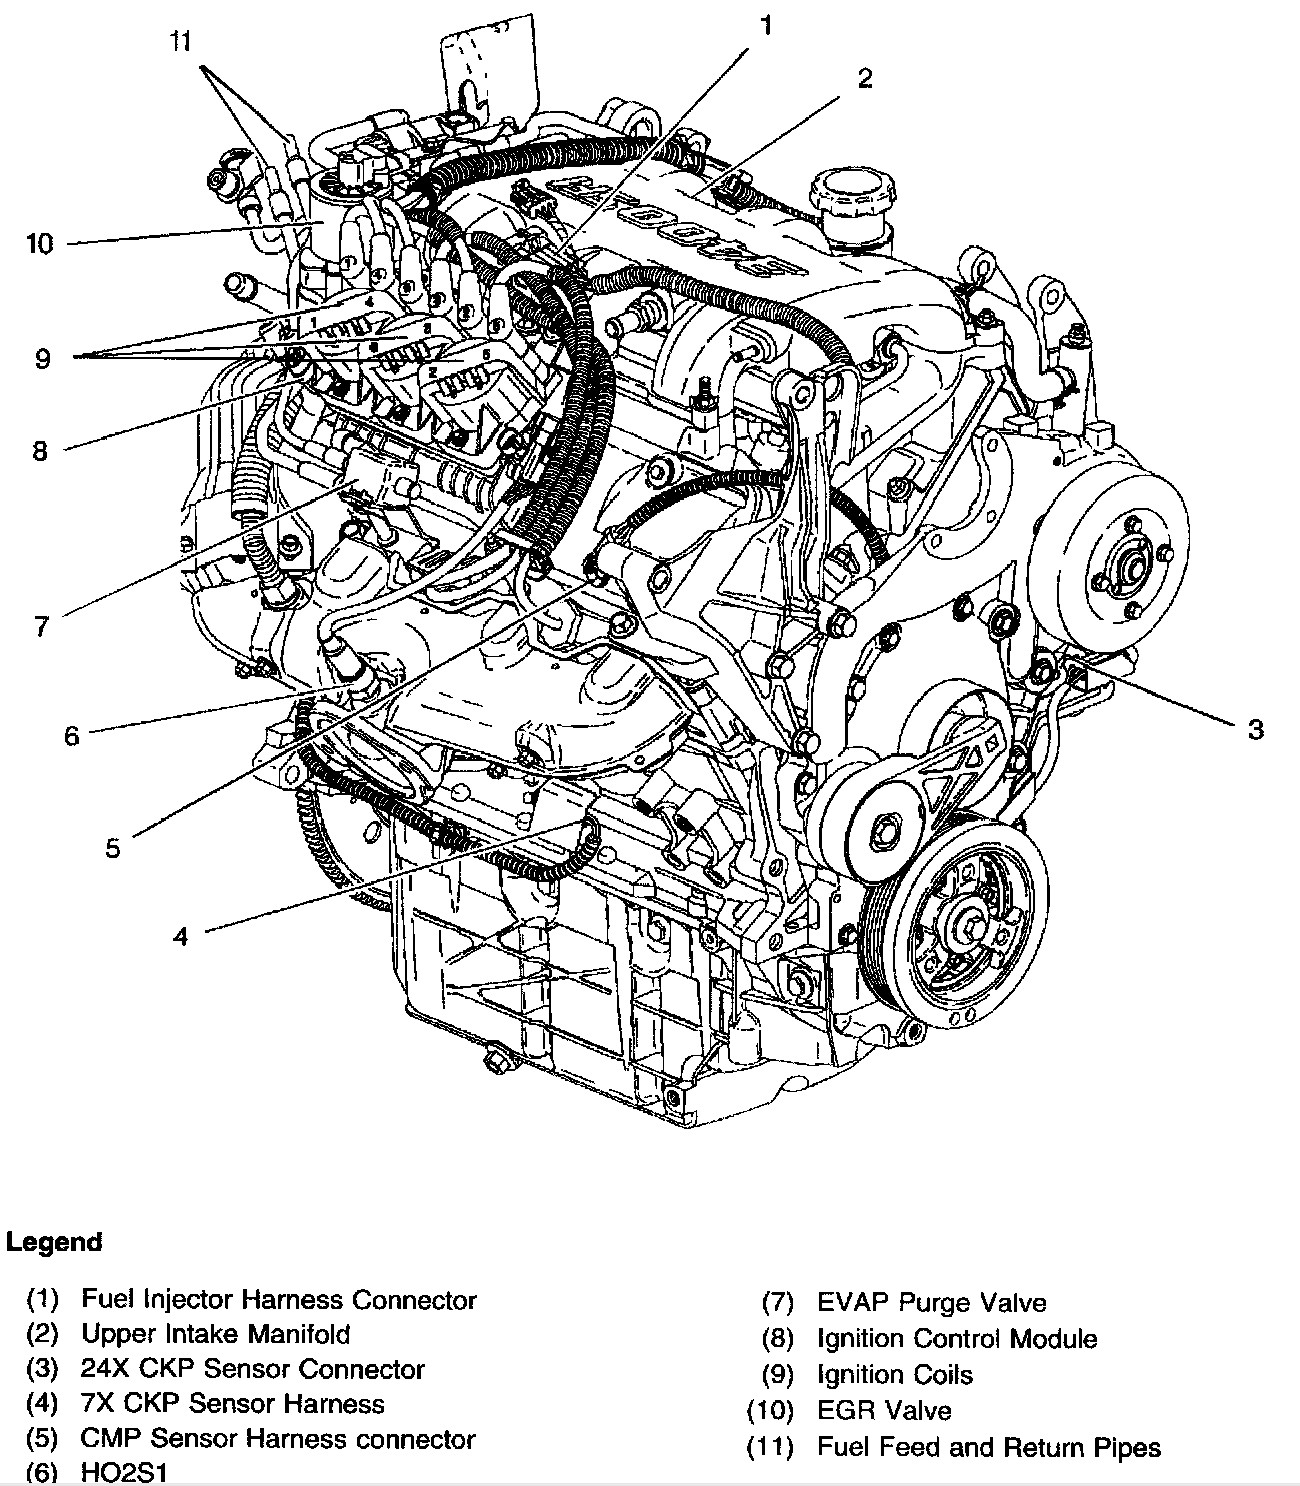 hight resolution of engine diagram also 1977 pontiac grand prix vacuum diagram on e2 rsx engine diagram